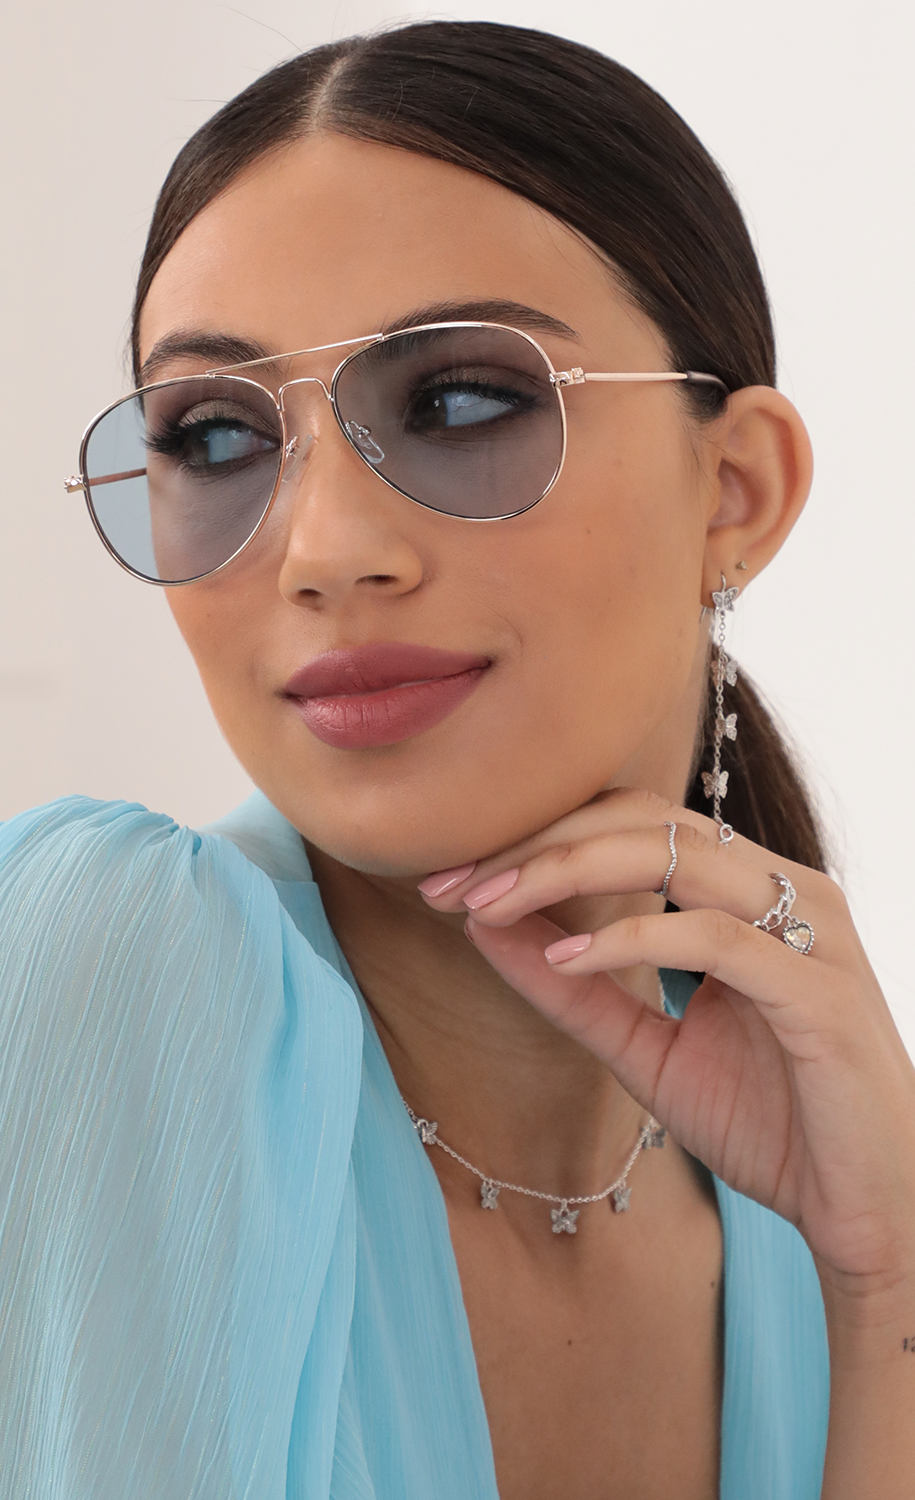 Iconic Retro Aviator Sunglasses in Light Blue